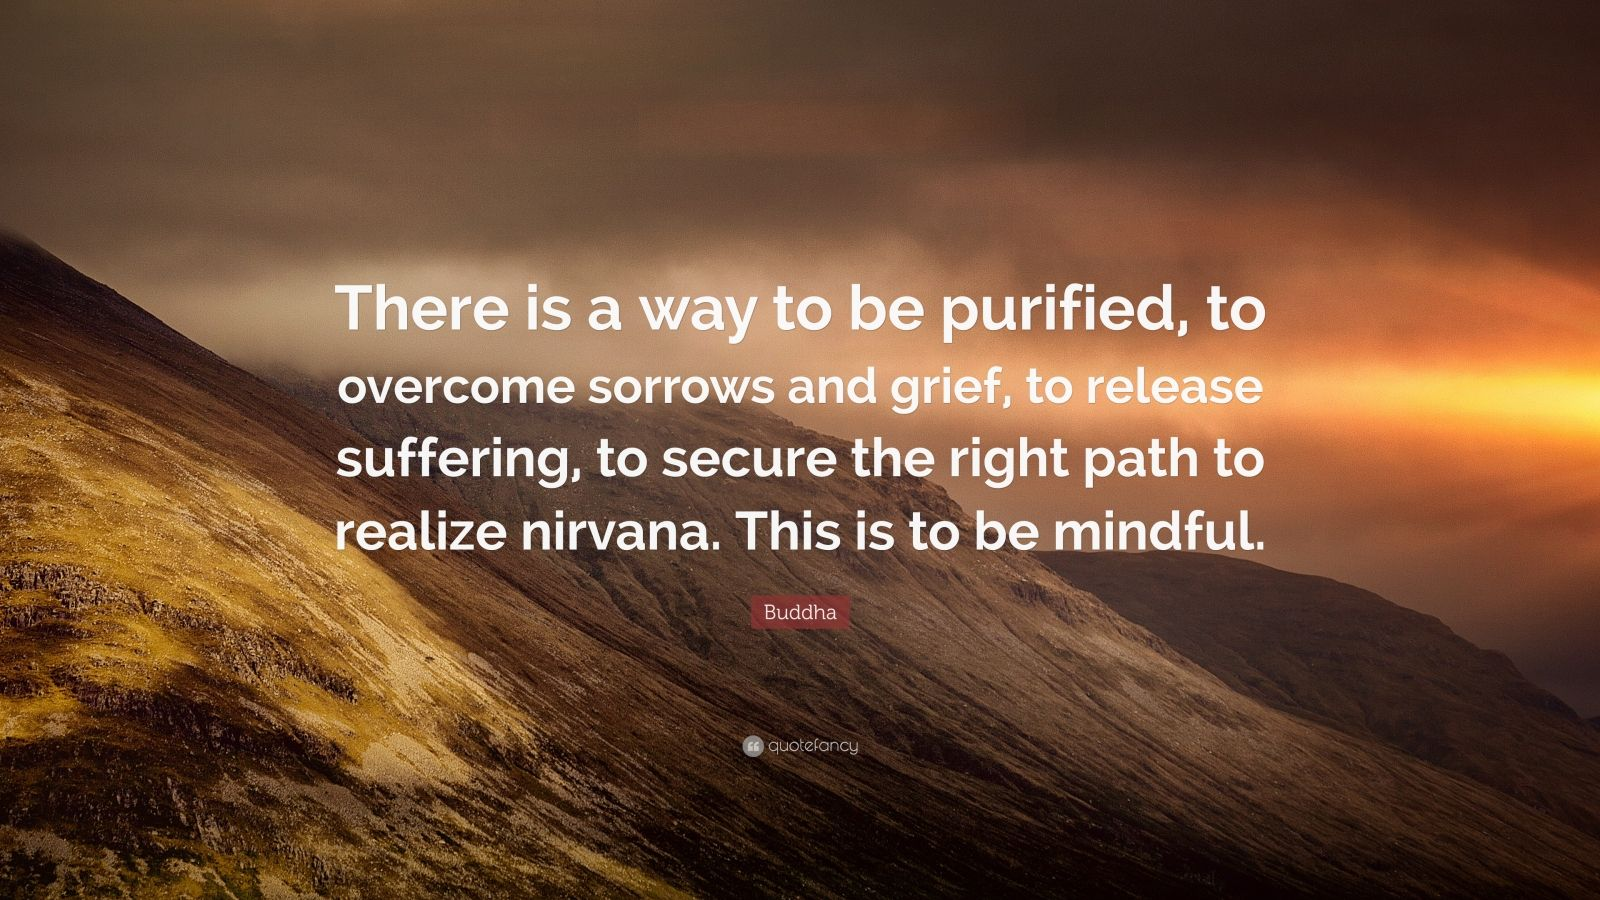 """Buddha Quote: """"There is a way to be purified, to overcome sorrows and grief, to release suffering, to secure the right path to realize nirvana. This is to be mindful."""""""